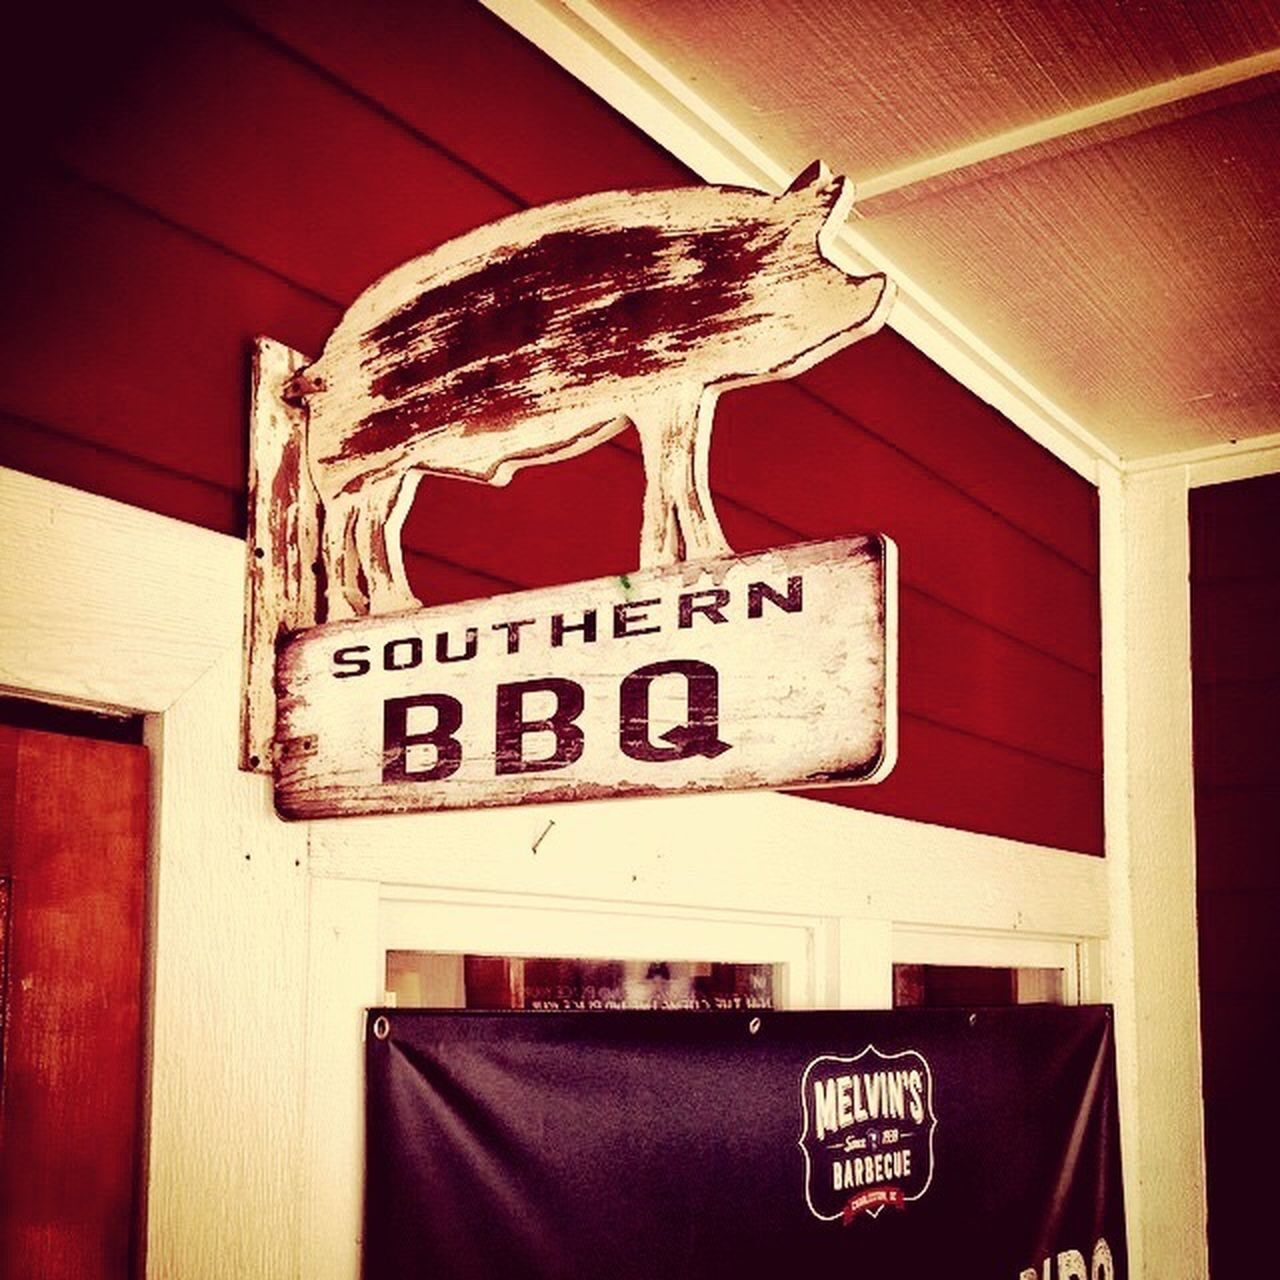 Barbecue Pig Southern South Carolina Red Restaurant Sign Feel The Journey